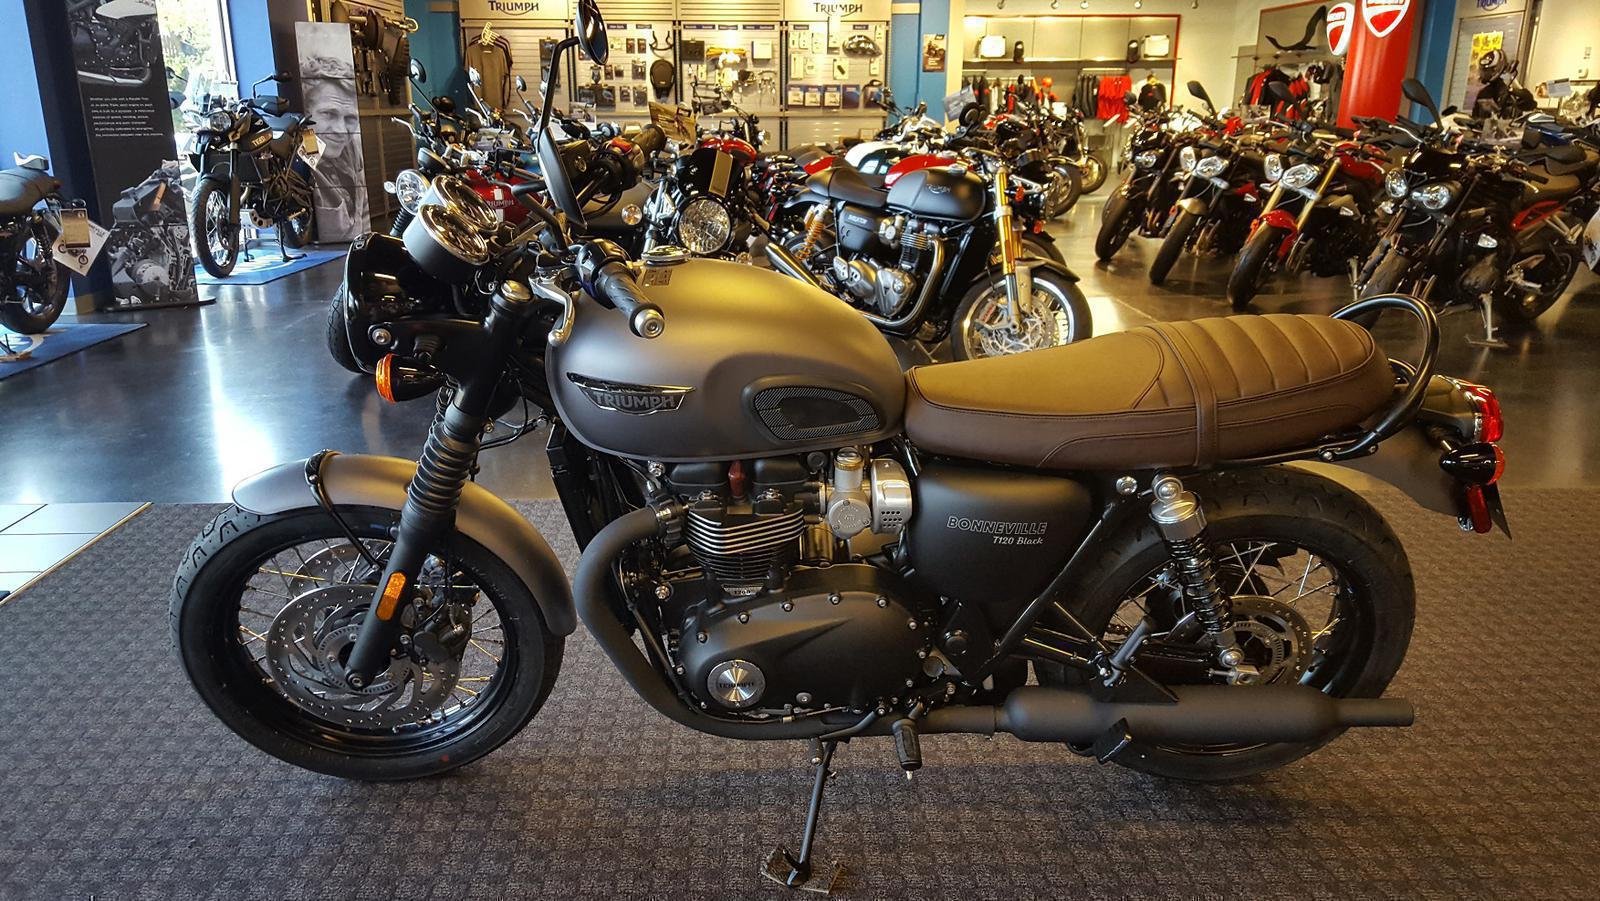 2018 Triumph Bonneville T120 For Sale In Salem Va Frontline